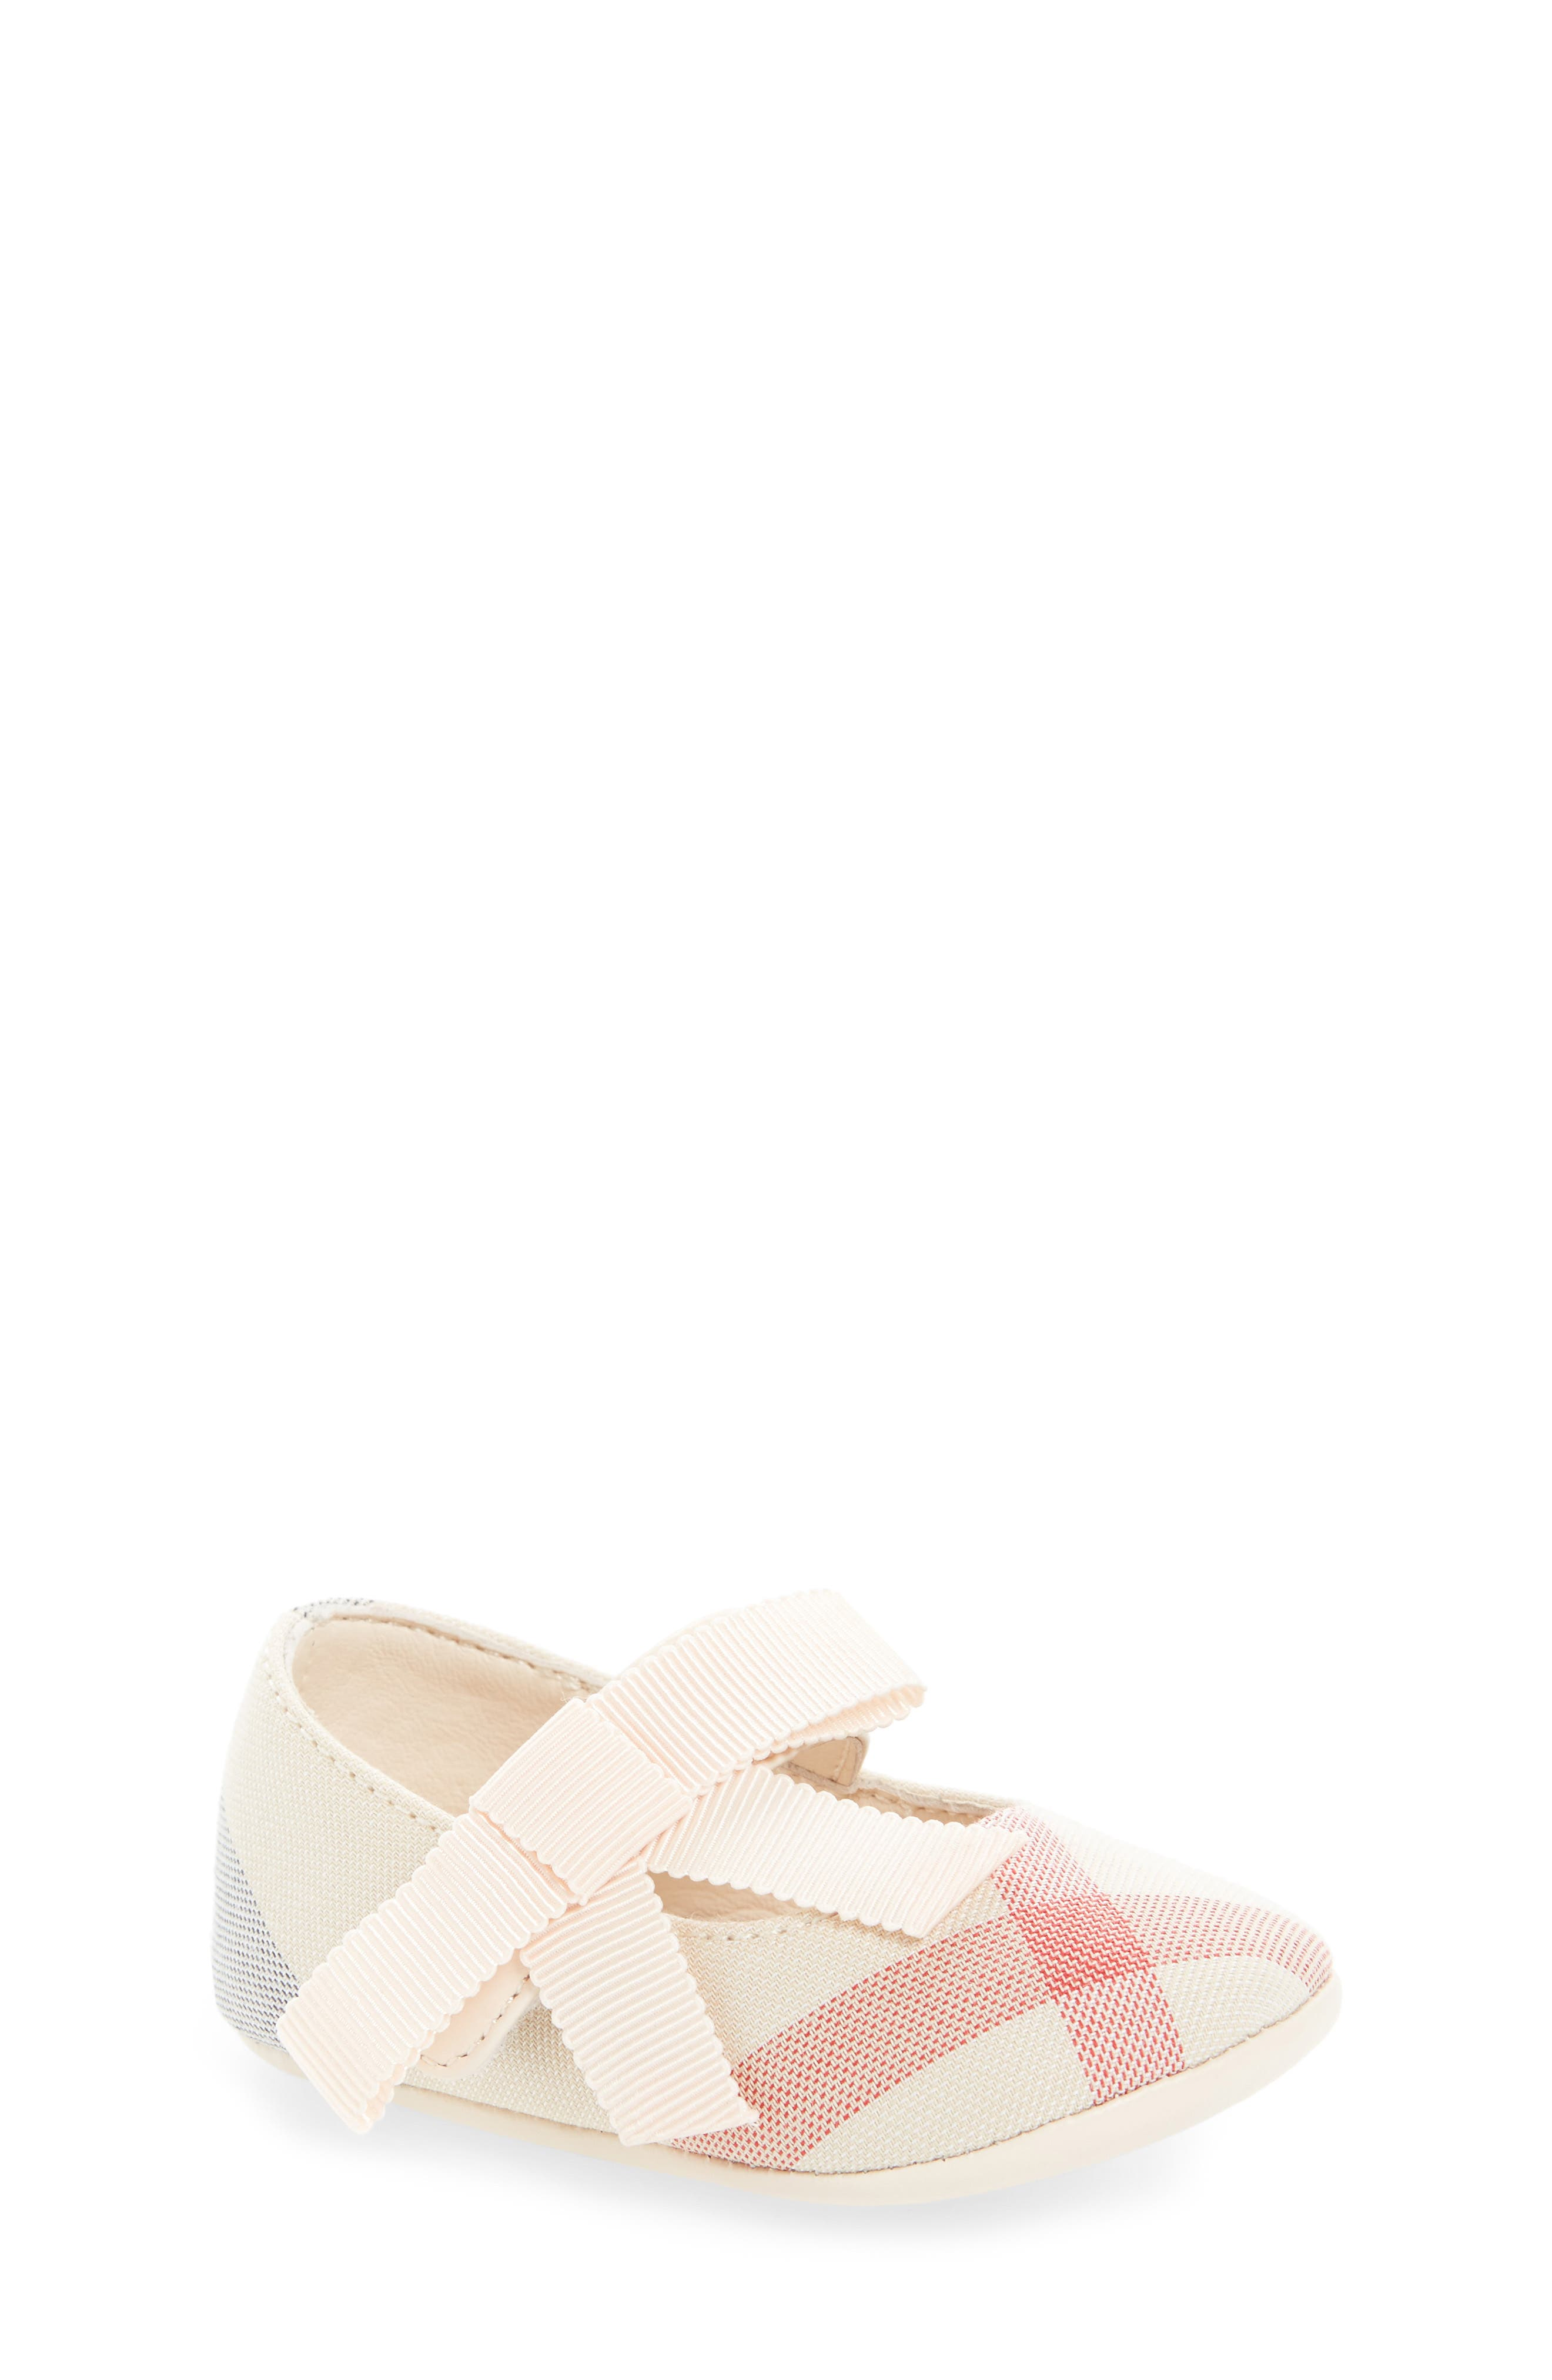 Burberry Stark Mary Jane Crib Shoe (Baby)